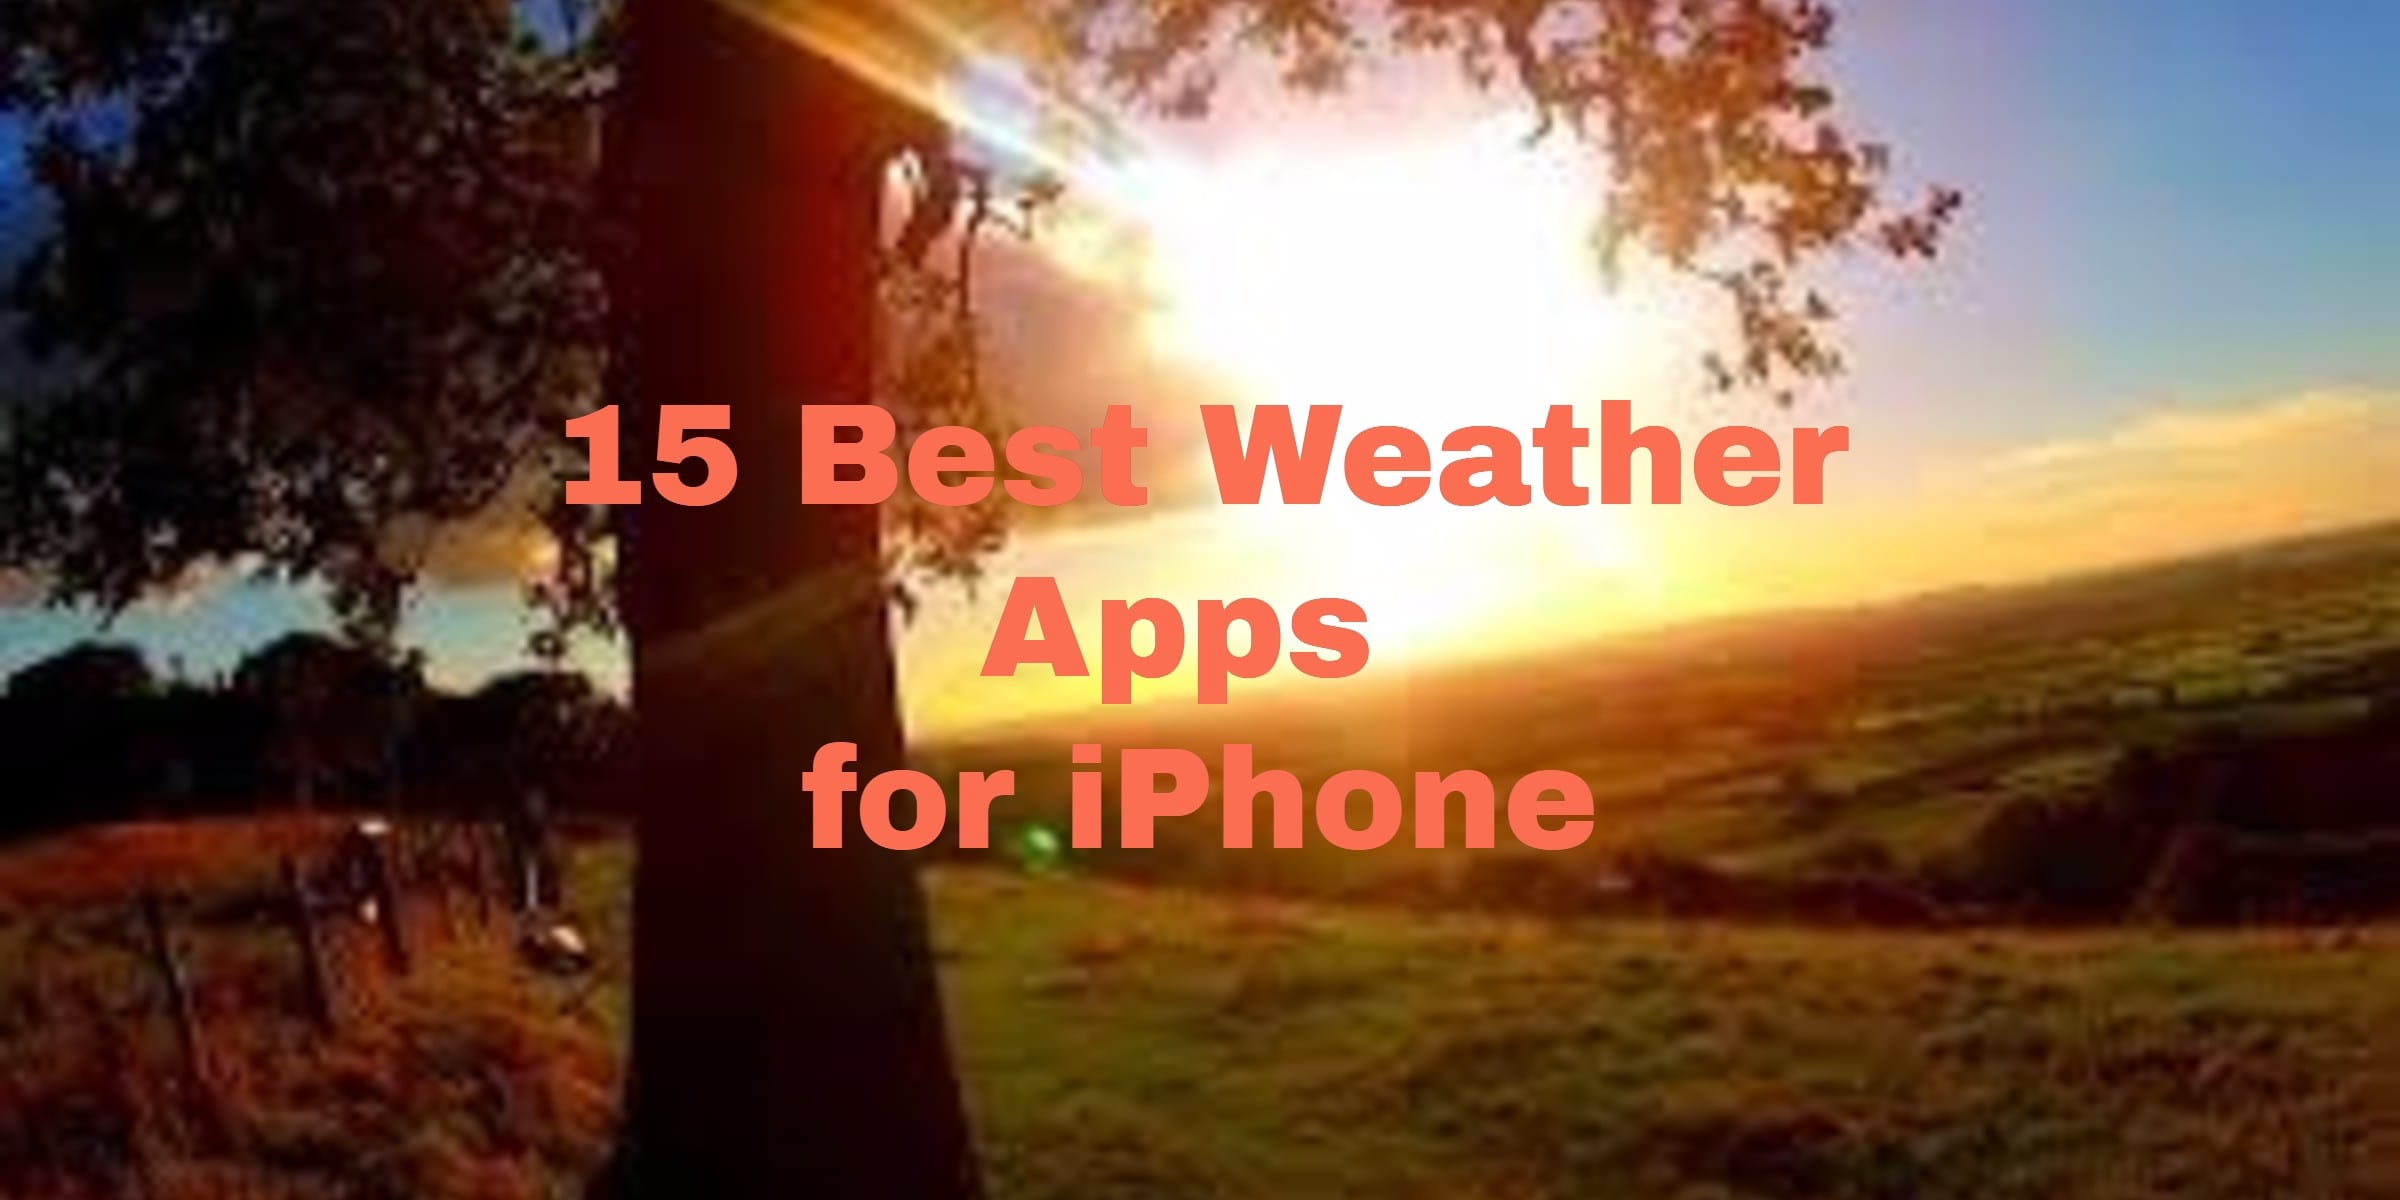 15 Best Weather Apps for iPhone | Free apps for Android and iOS